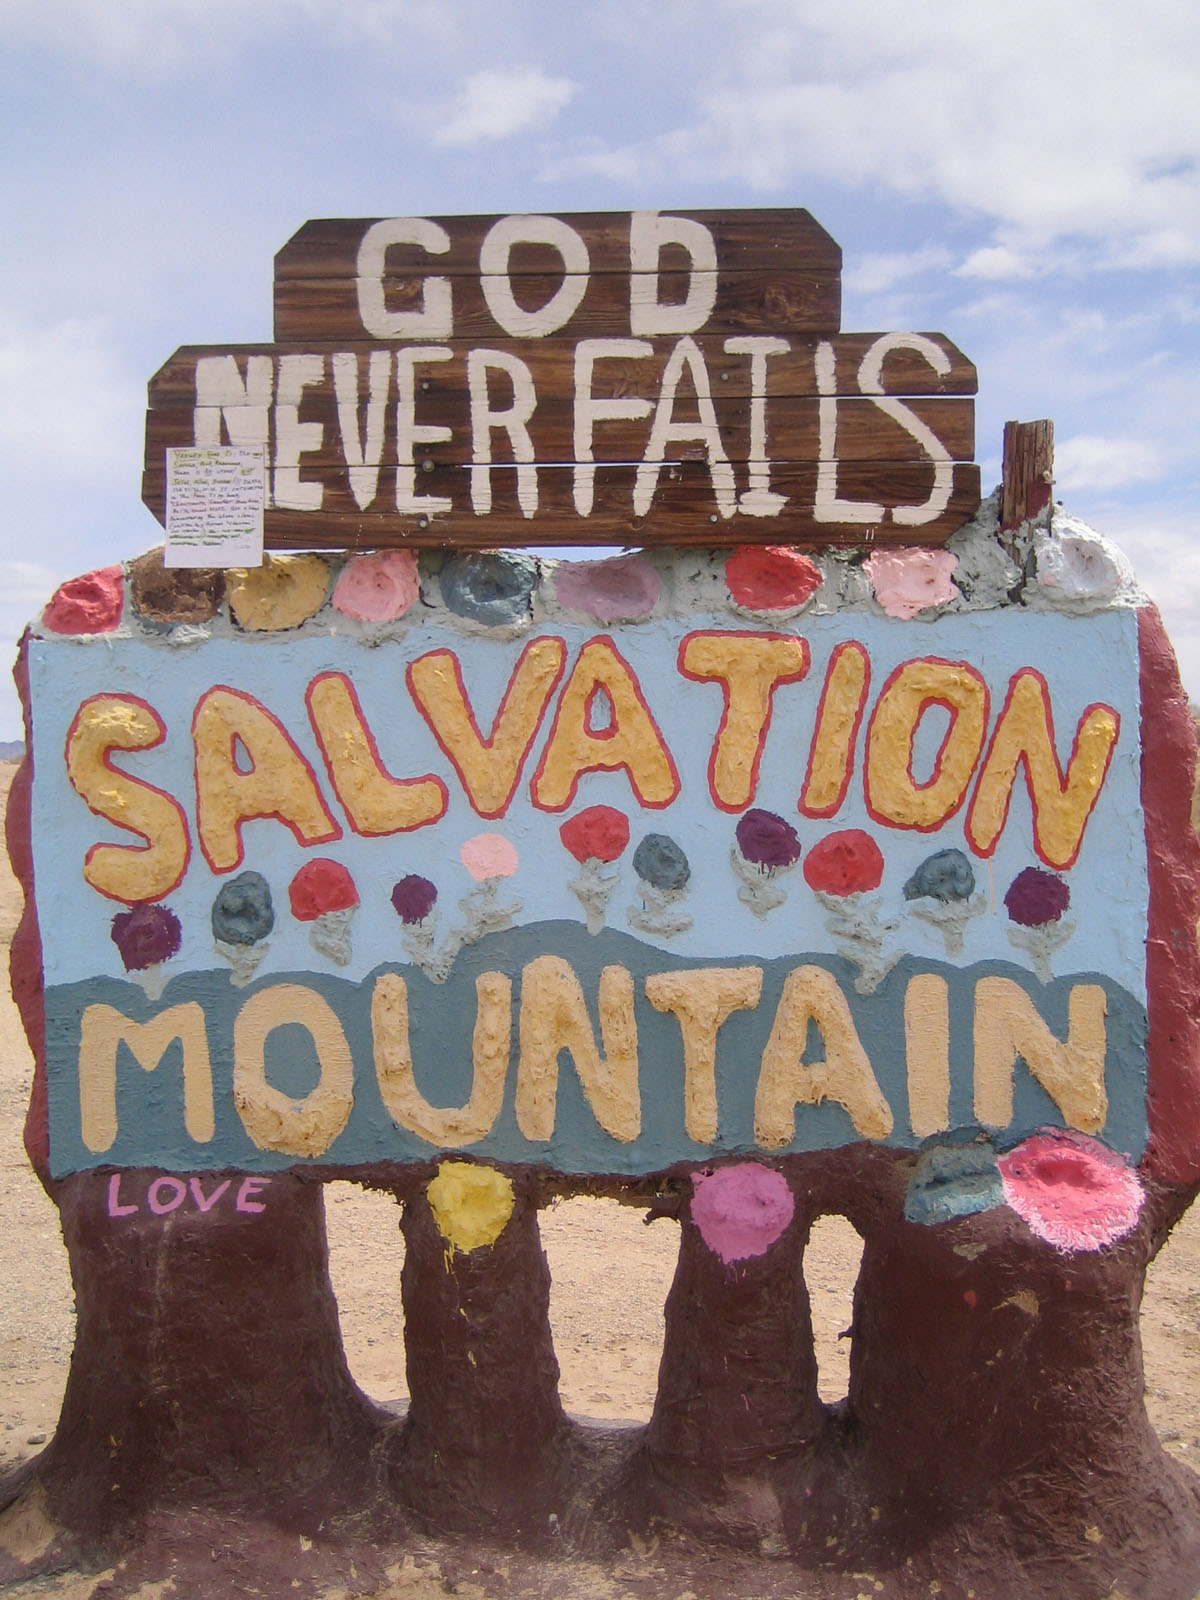 You just follow Beal Road out of Niland and eventually get to Salvation Mountain. I had a small fear that my friends and I would miss it, but this sign was pretty unmistakable.